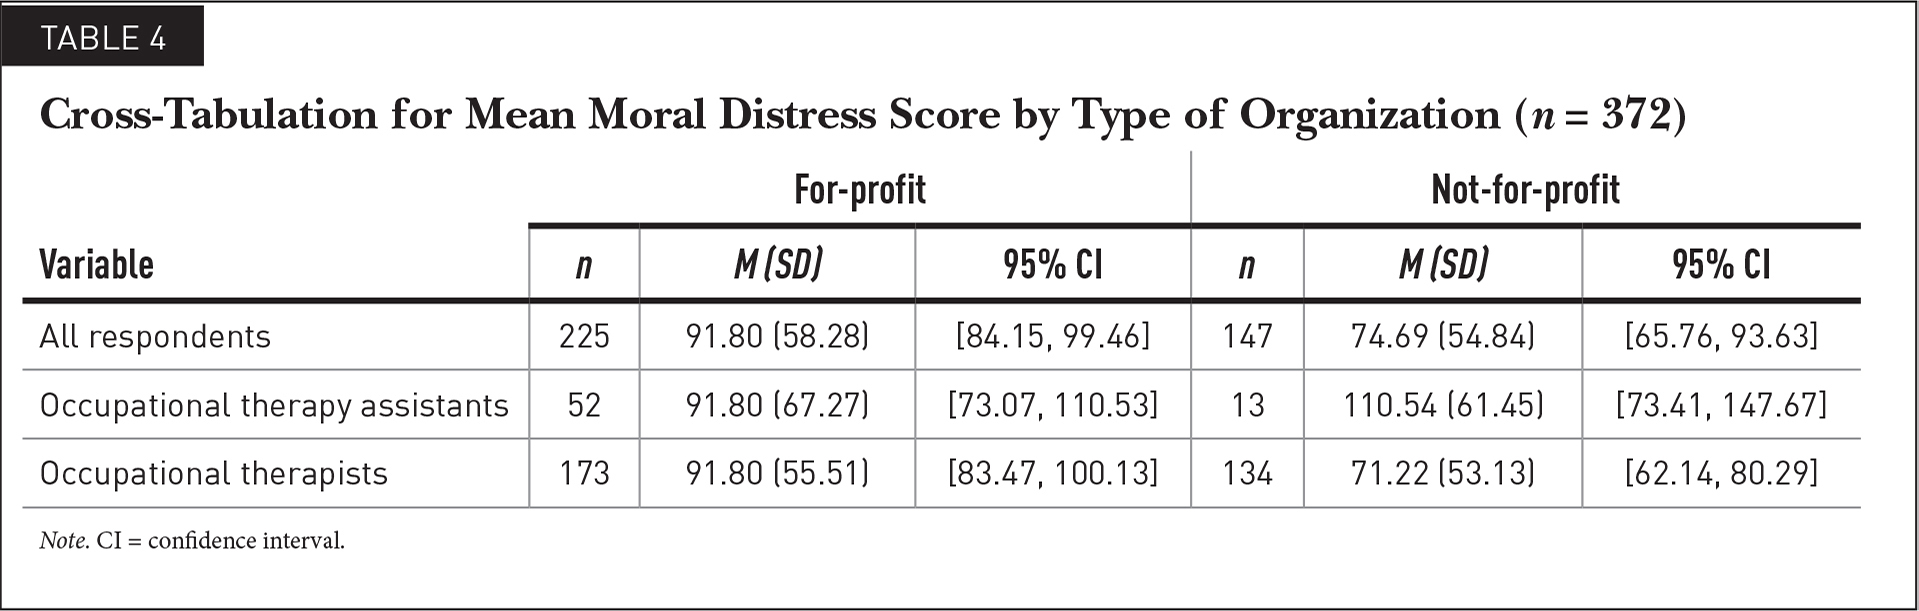 Cross-Tabulation for Mean Moral Distress Score by Type of Organization (n = 372)